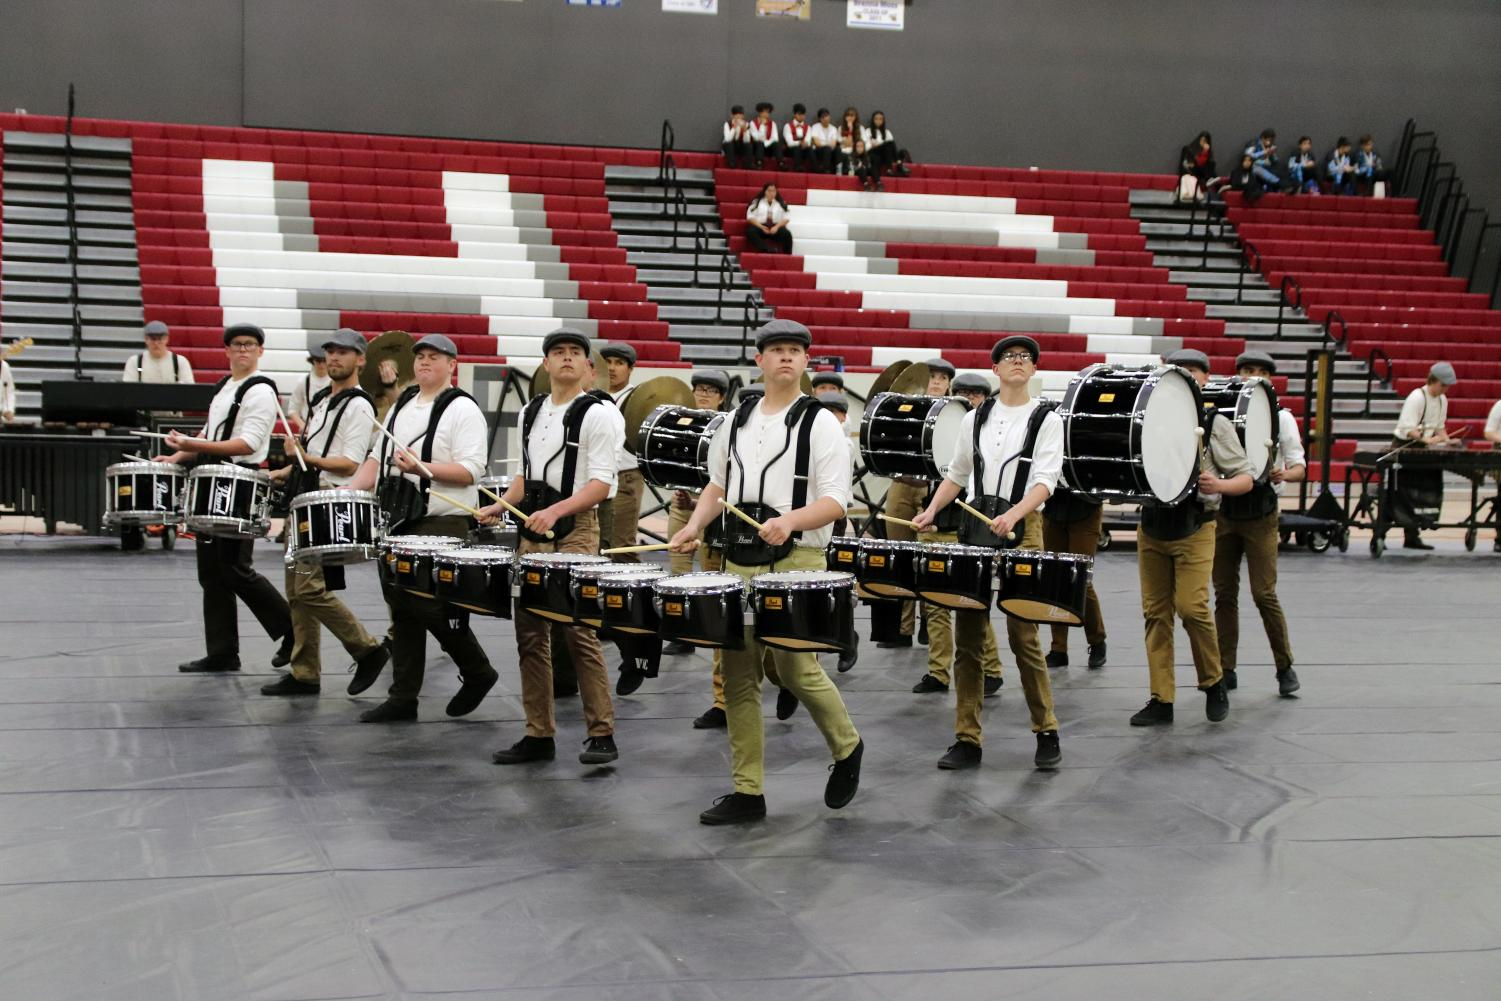 Standing in formation, Tanner Ashmore leads the Drumline at the beginning of the show. Drum Captain, Tanner Ashmore said,